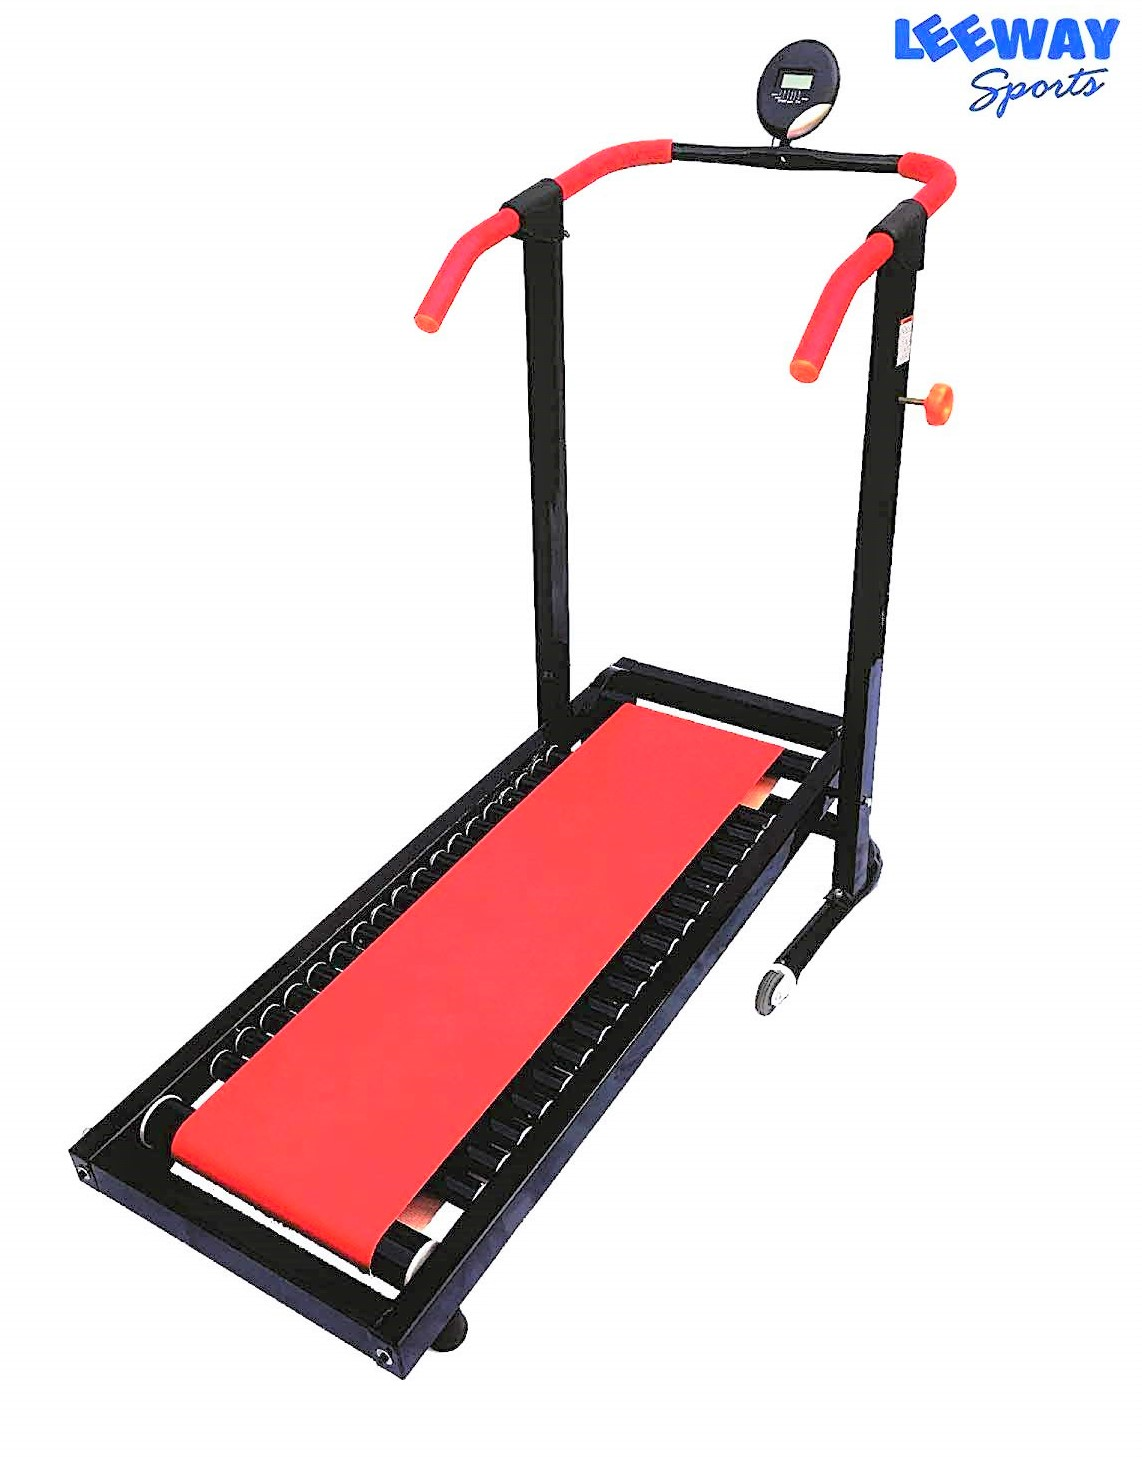 Sole F63 Treadmill Review 2020 Manual Guide